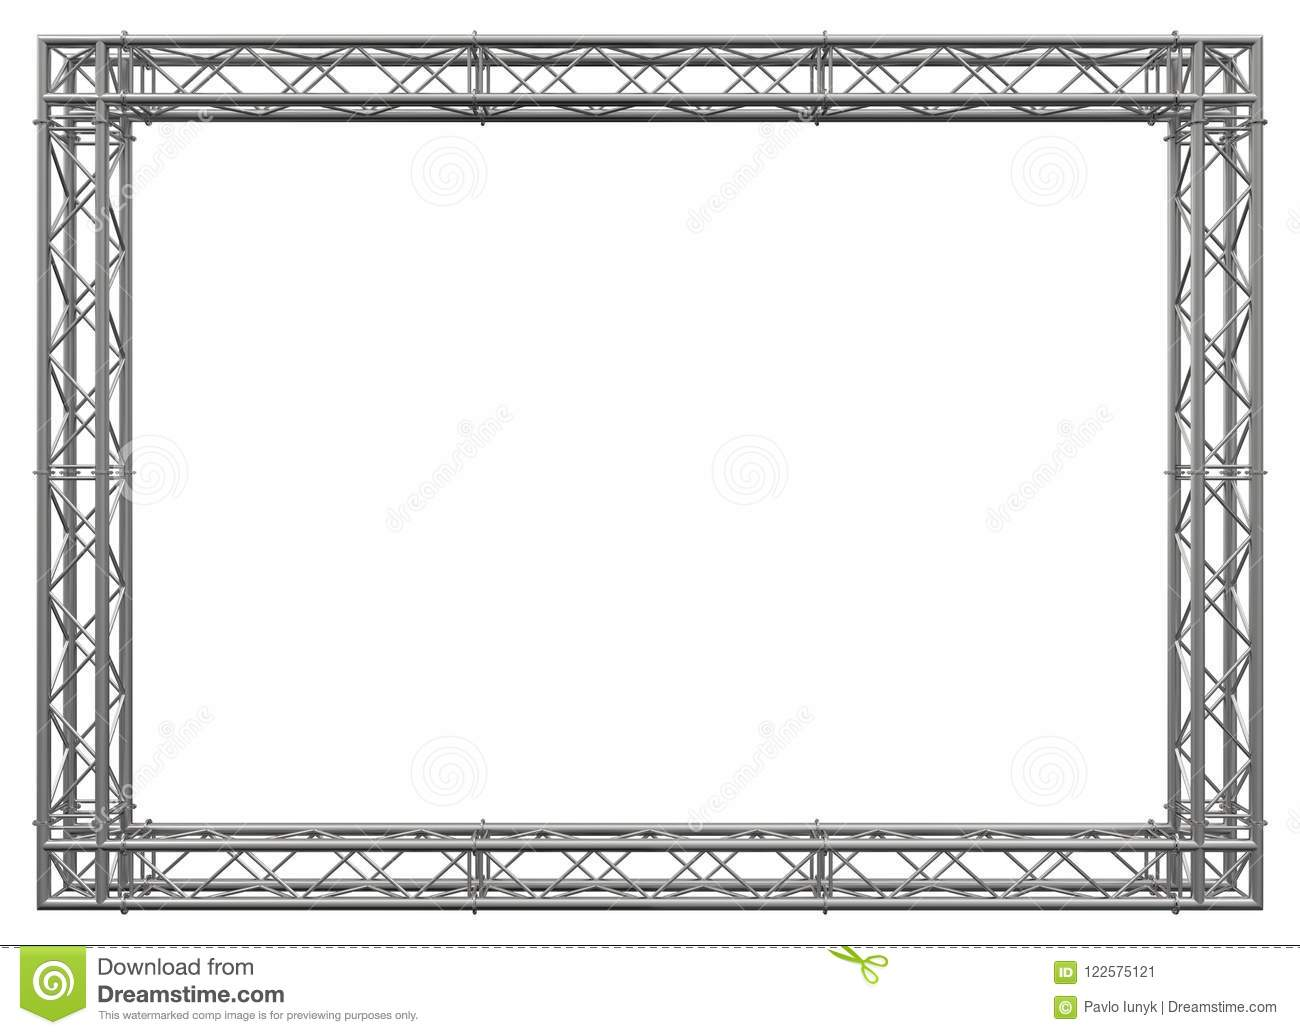 Trusses Construction Stainless Steel Decorative Border Stock ...